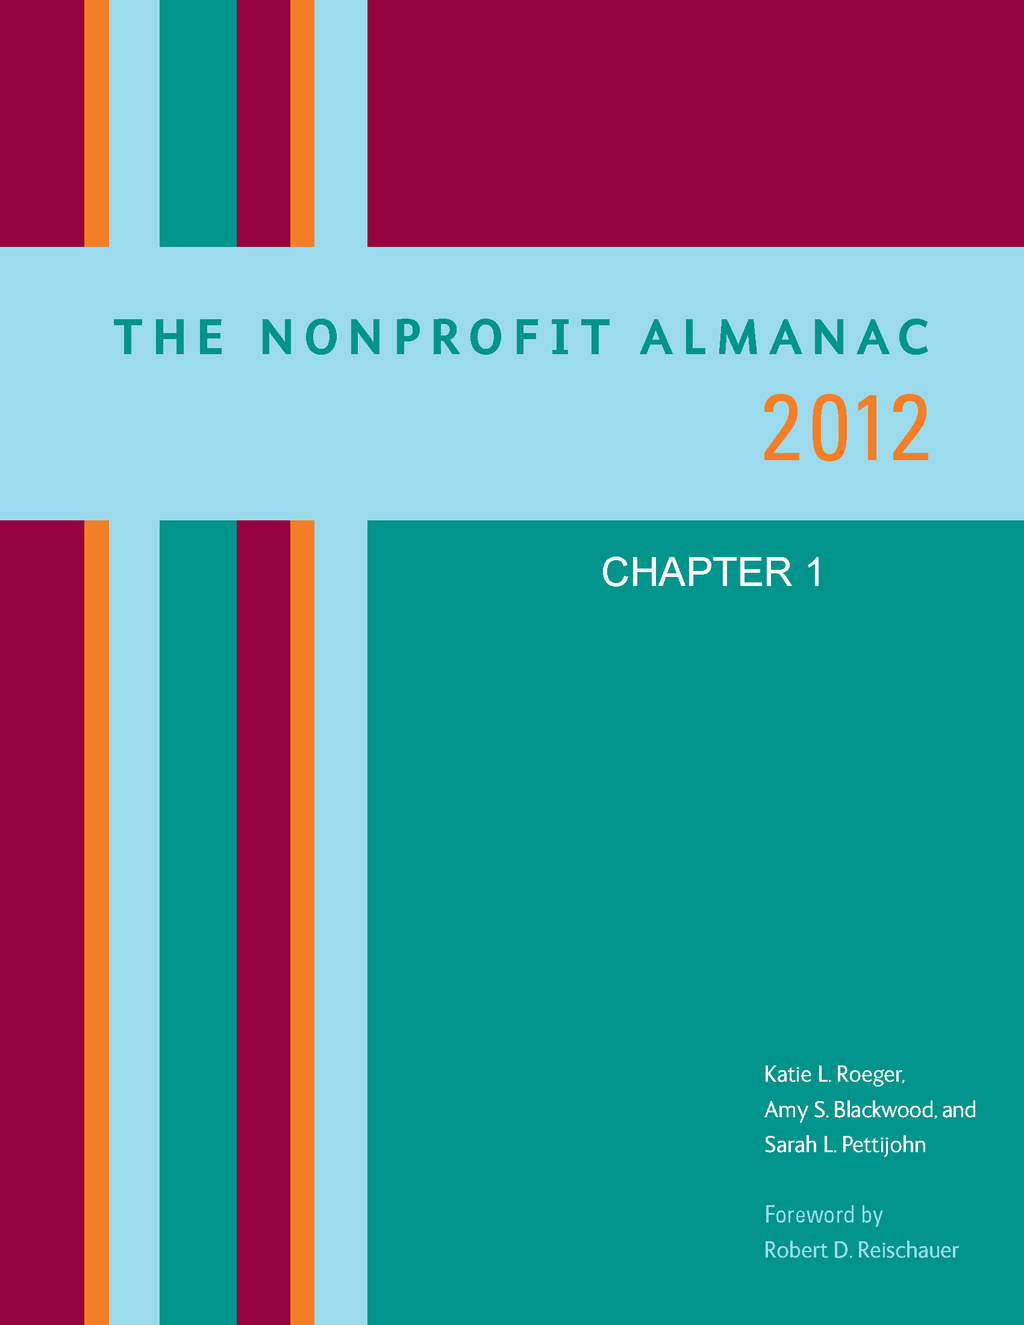 The Nonprofit Almanac 2012